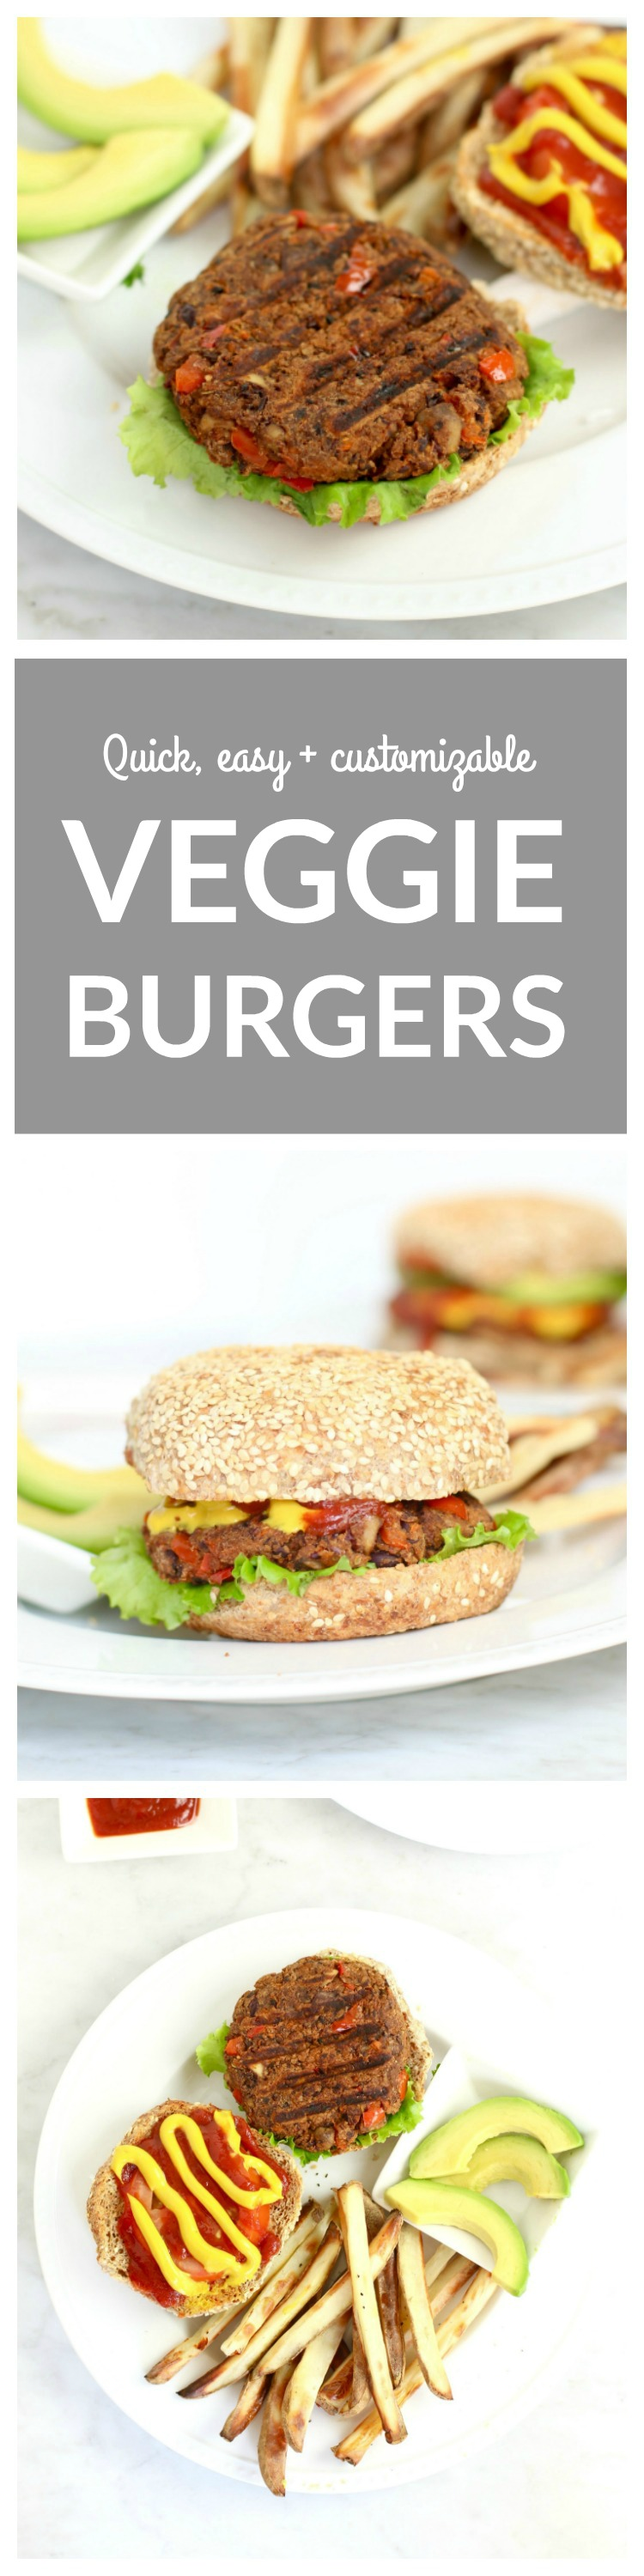 Quick, easy and customizable Veggie Burger